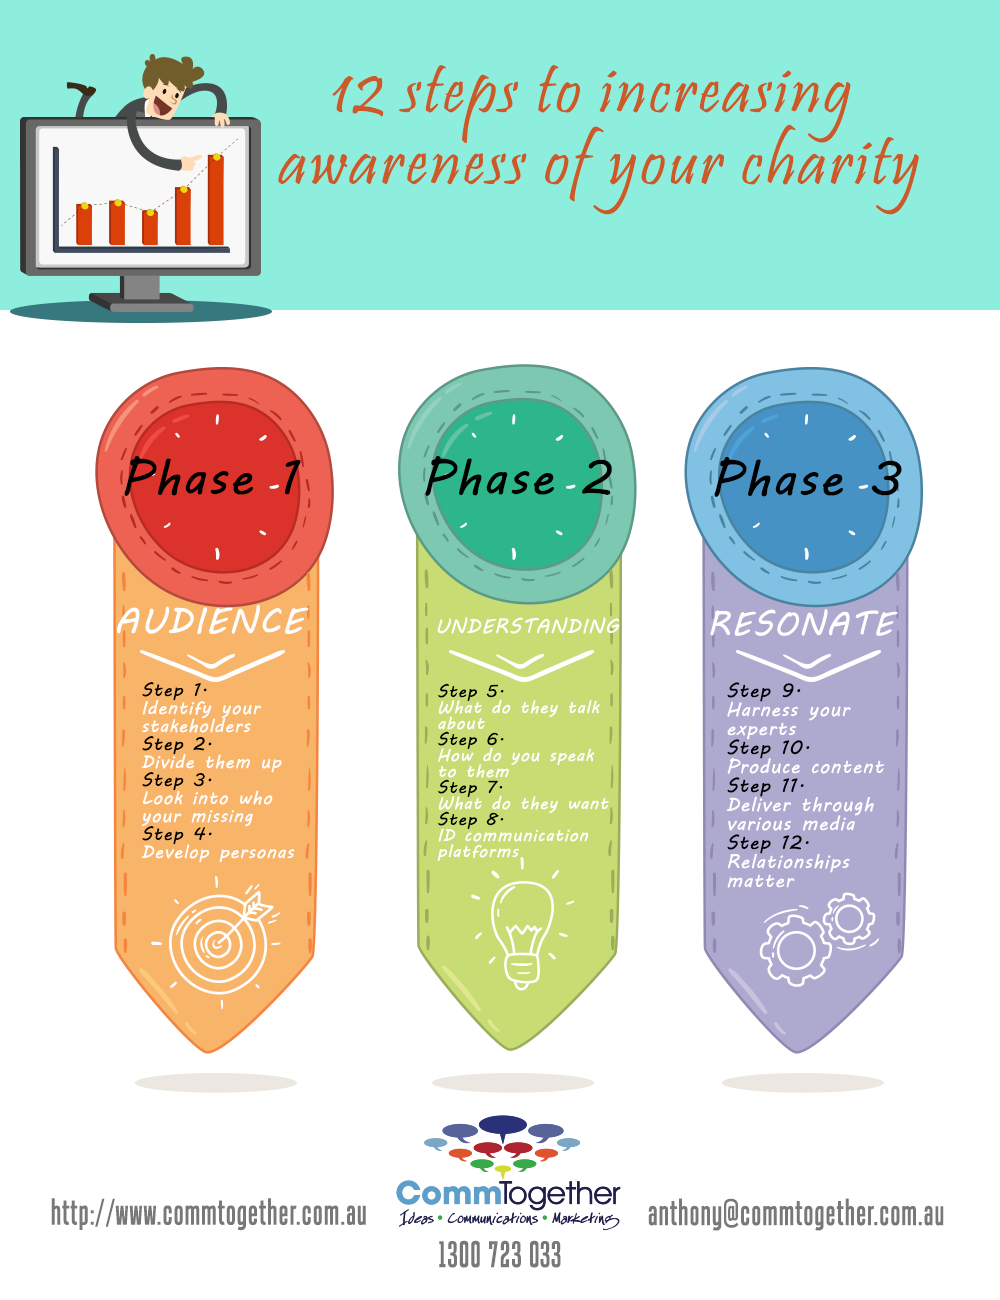 12-steps-to-increasing-awareness-of-your-charity-image.png